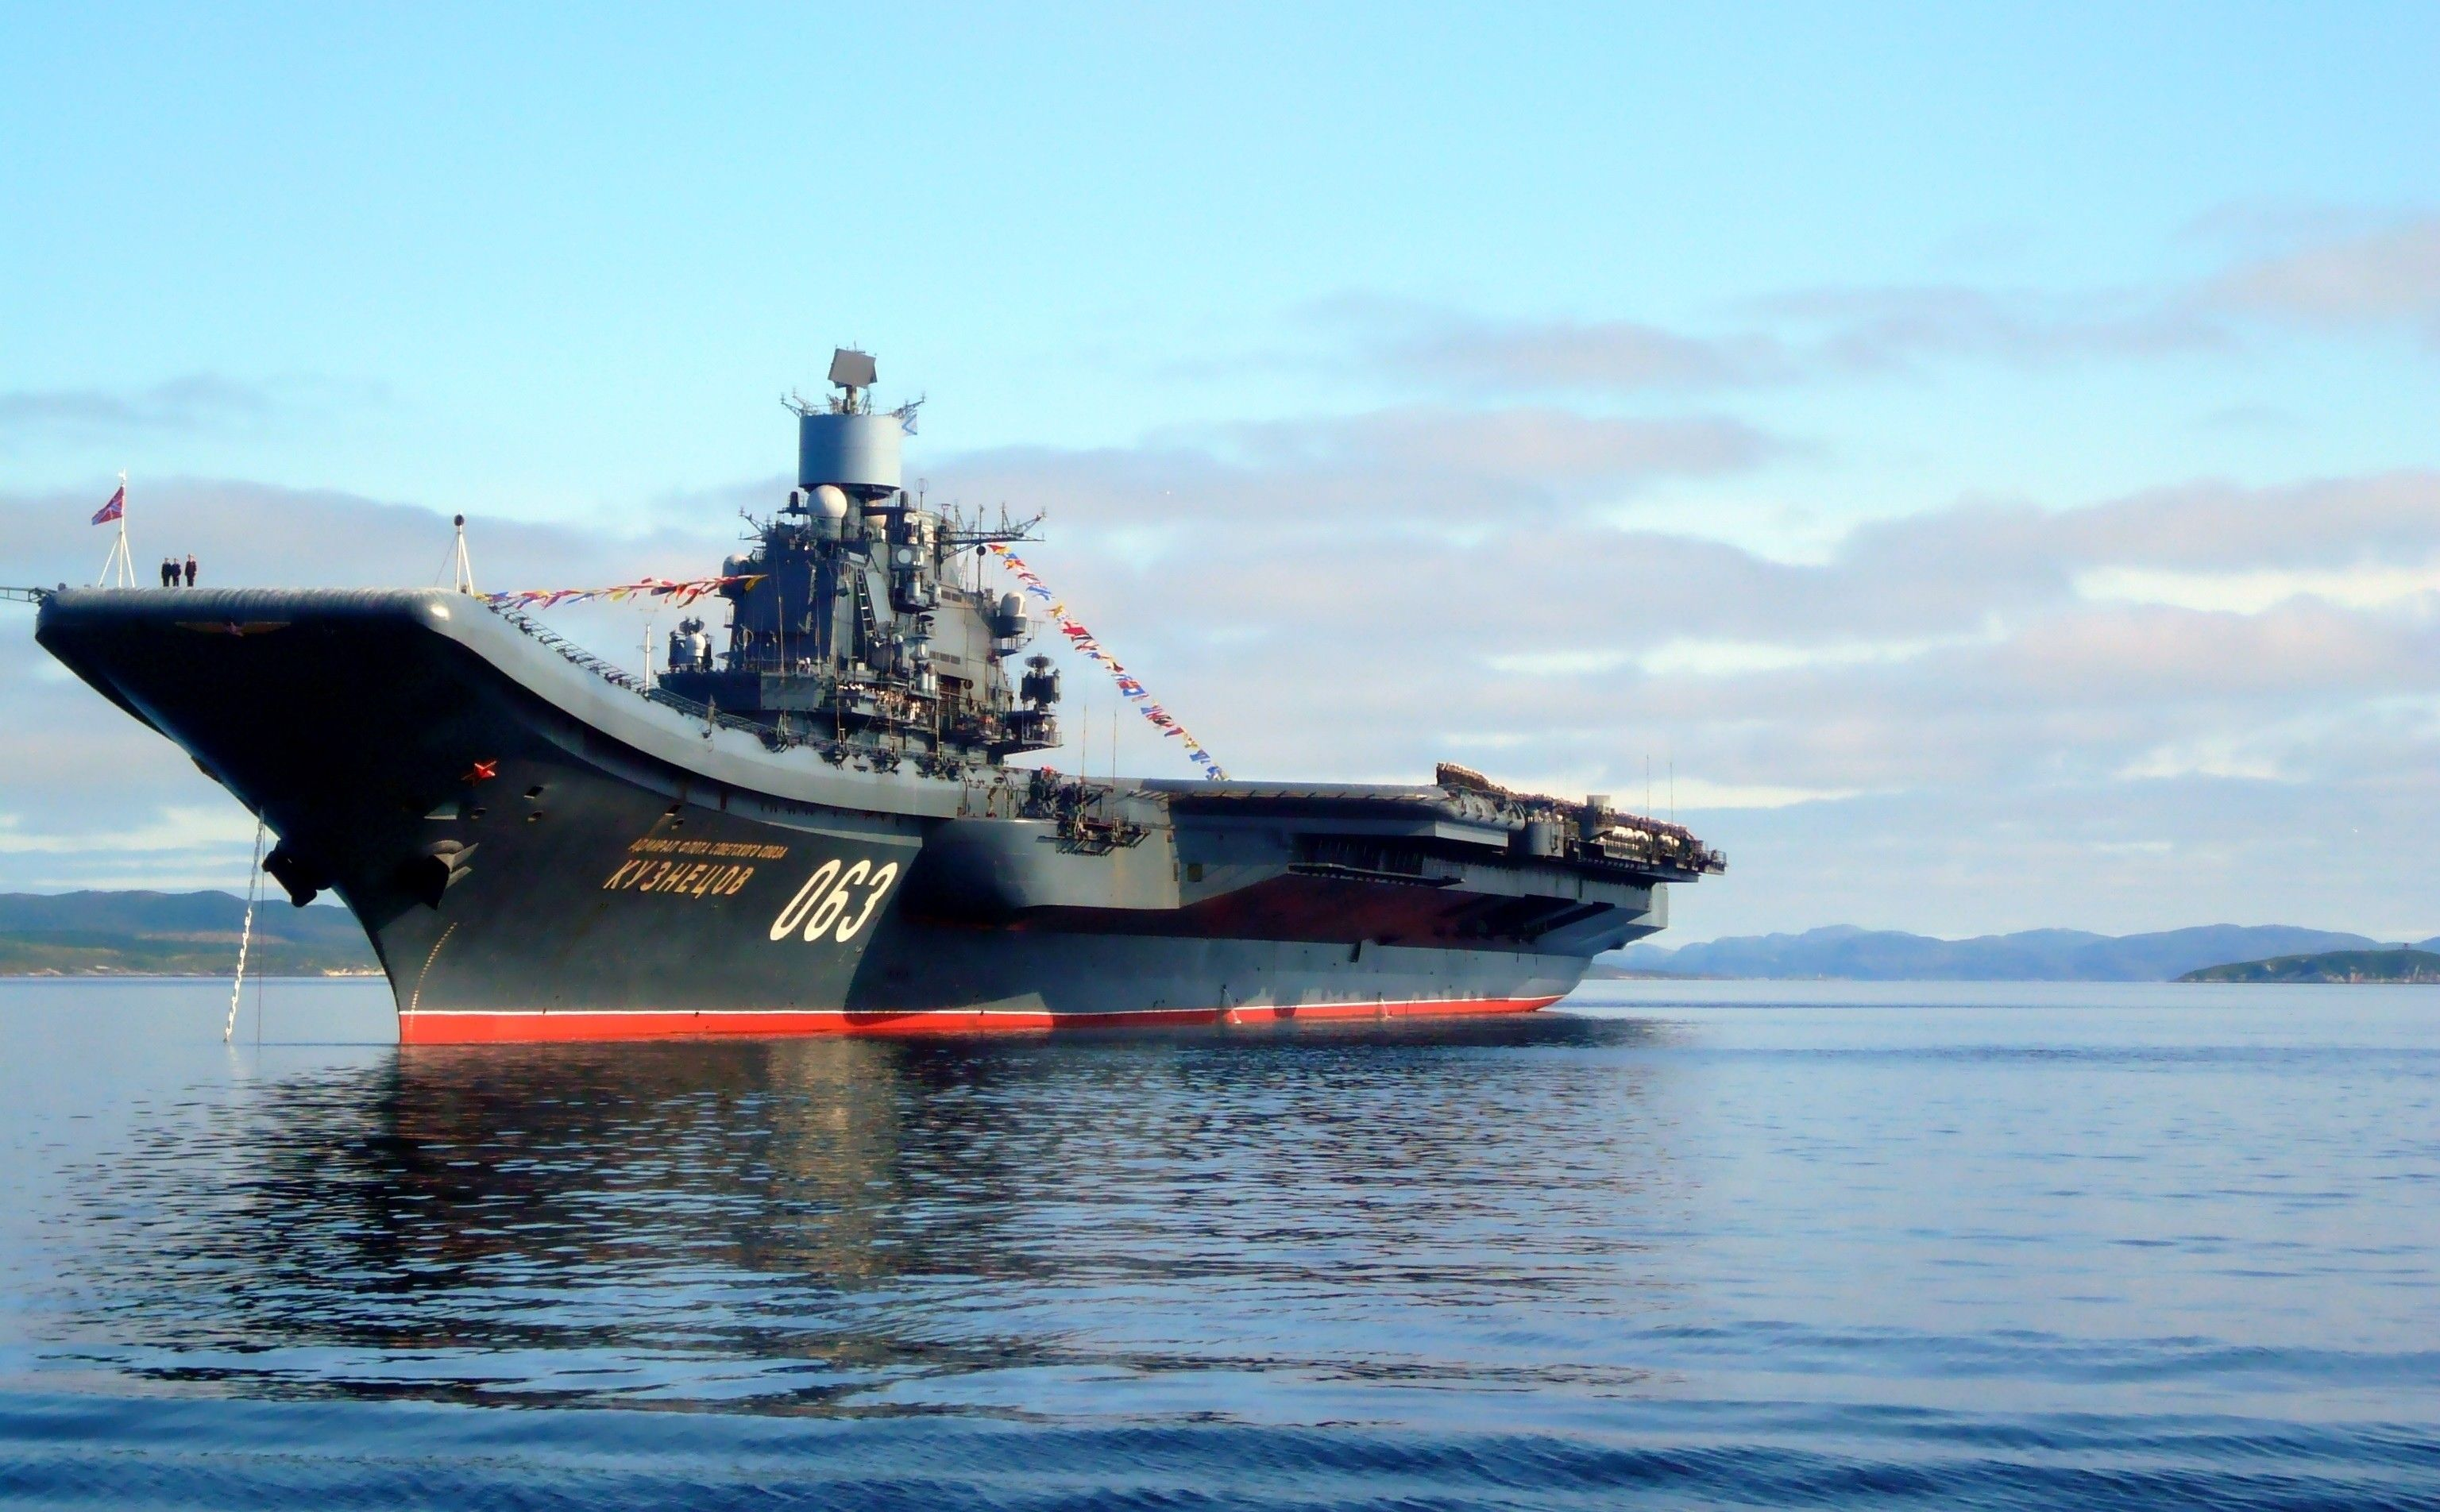 Pin By Marty Guderian Stevenson On Russian Military Aircraft Carrier Navy Carriers Indian Navy Day